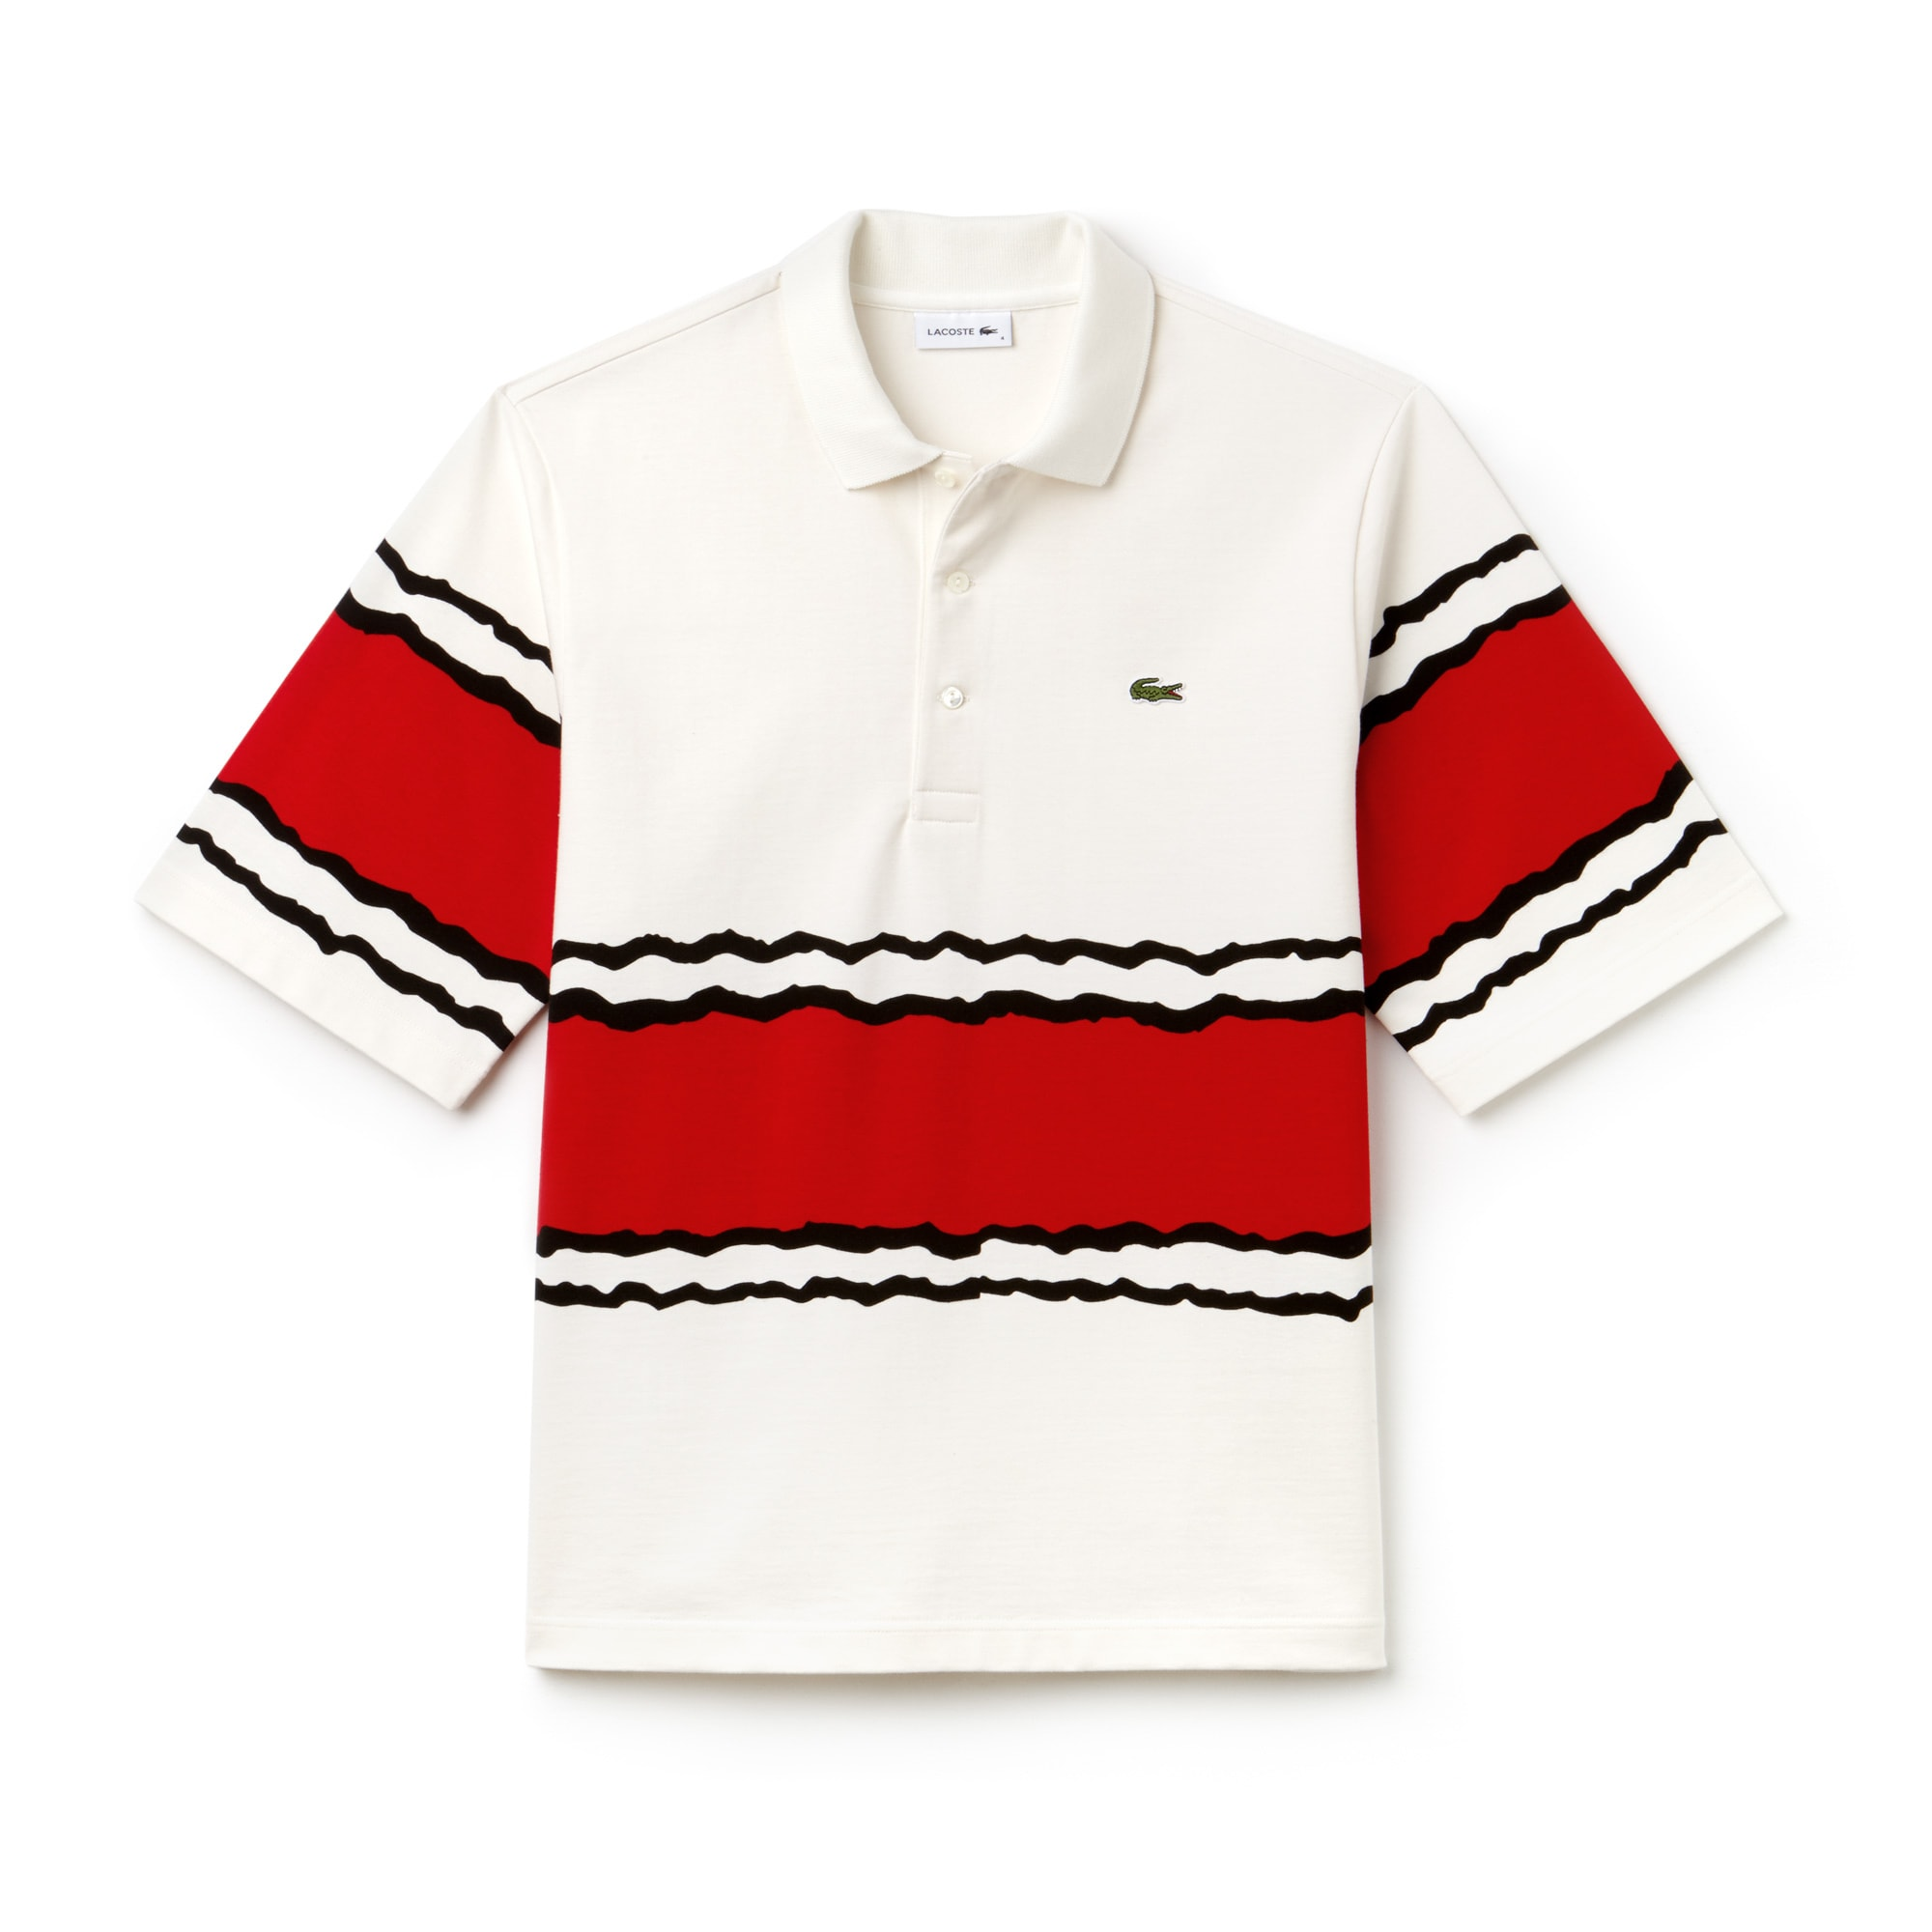 Men's Lacoste Fashion Show Thick Striped Cotton Jersey Polo Shirt